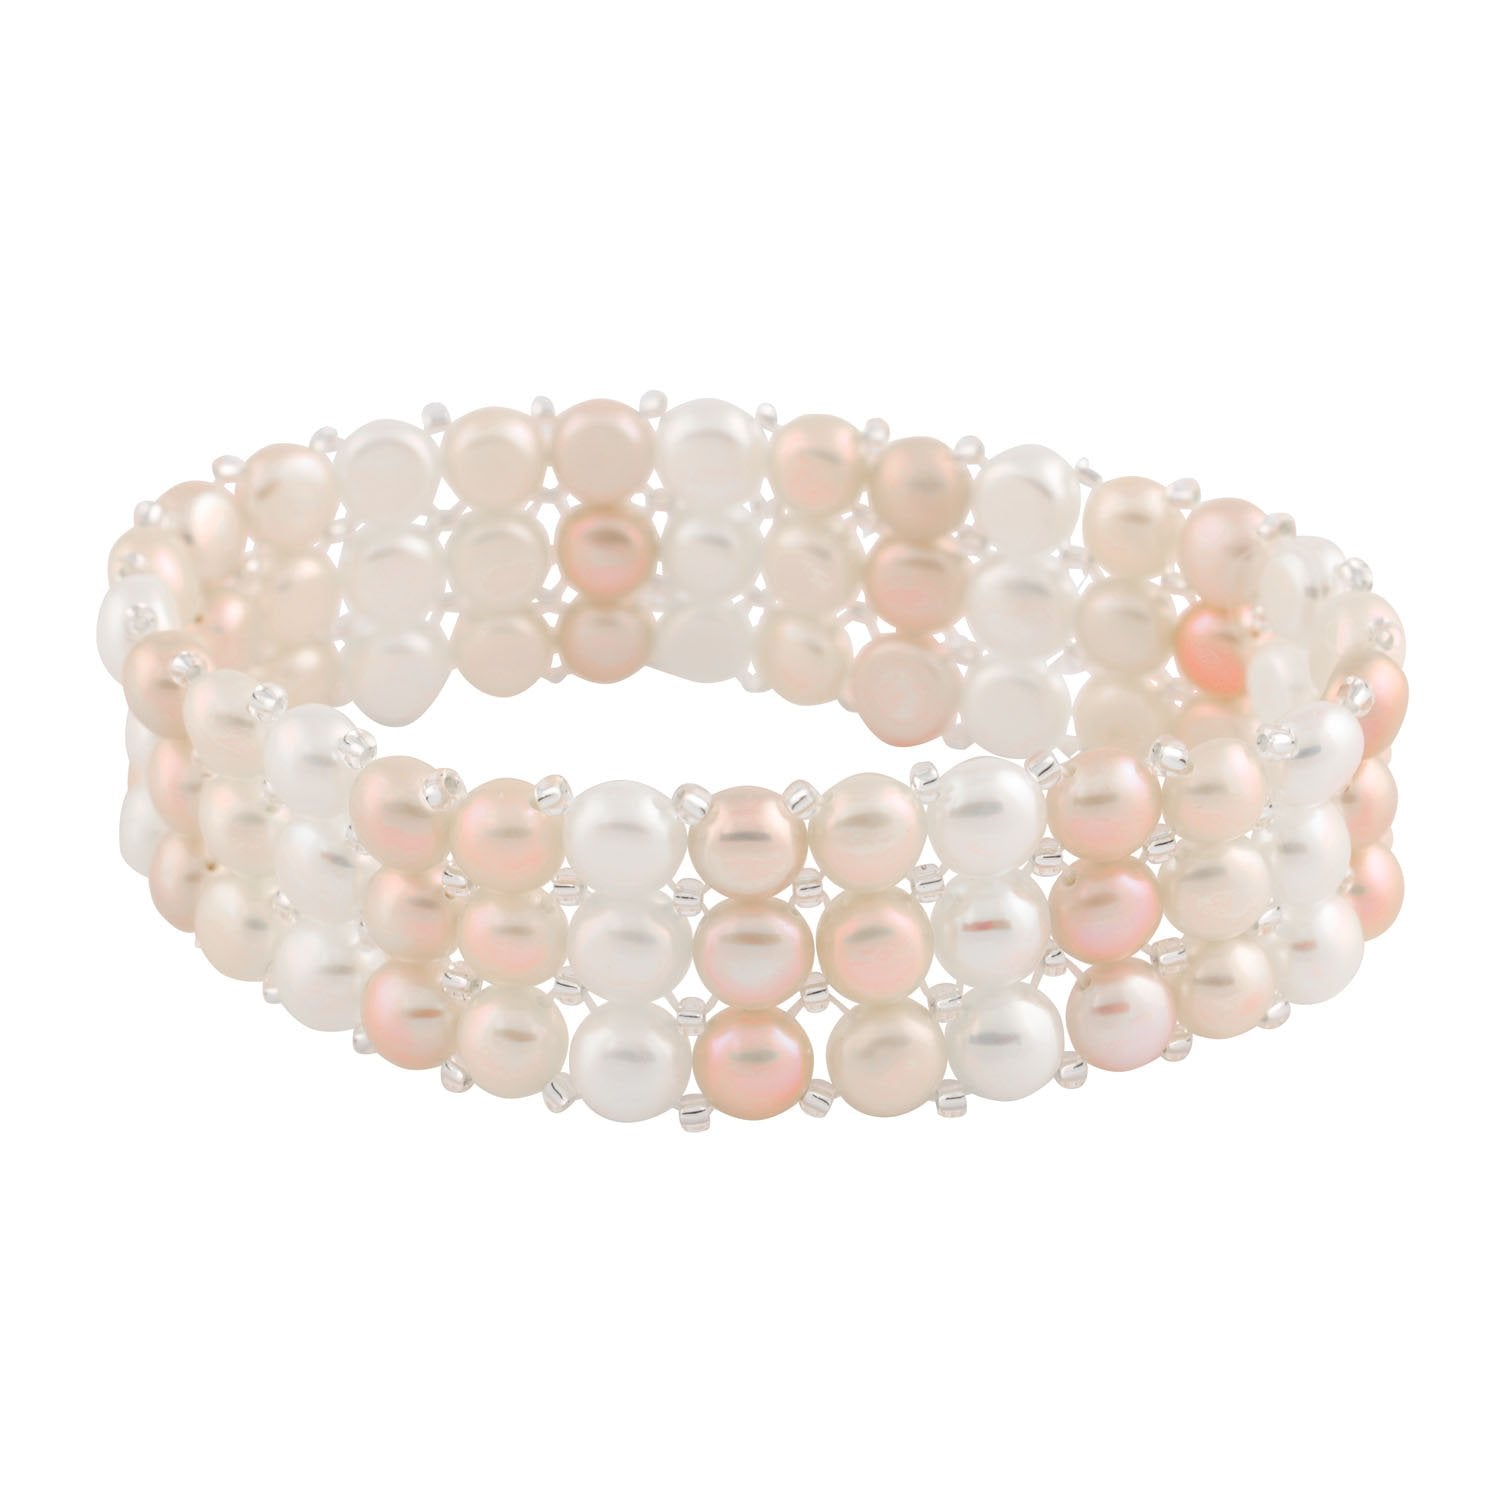 Beautiful Knitted Triple Row Pearl Bracelet